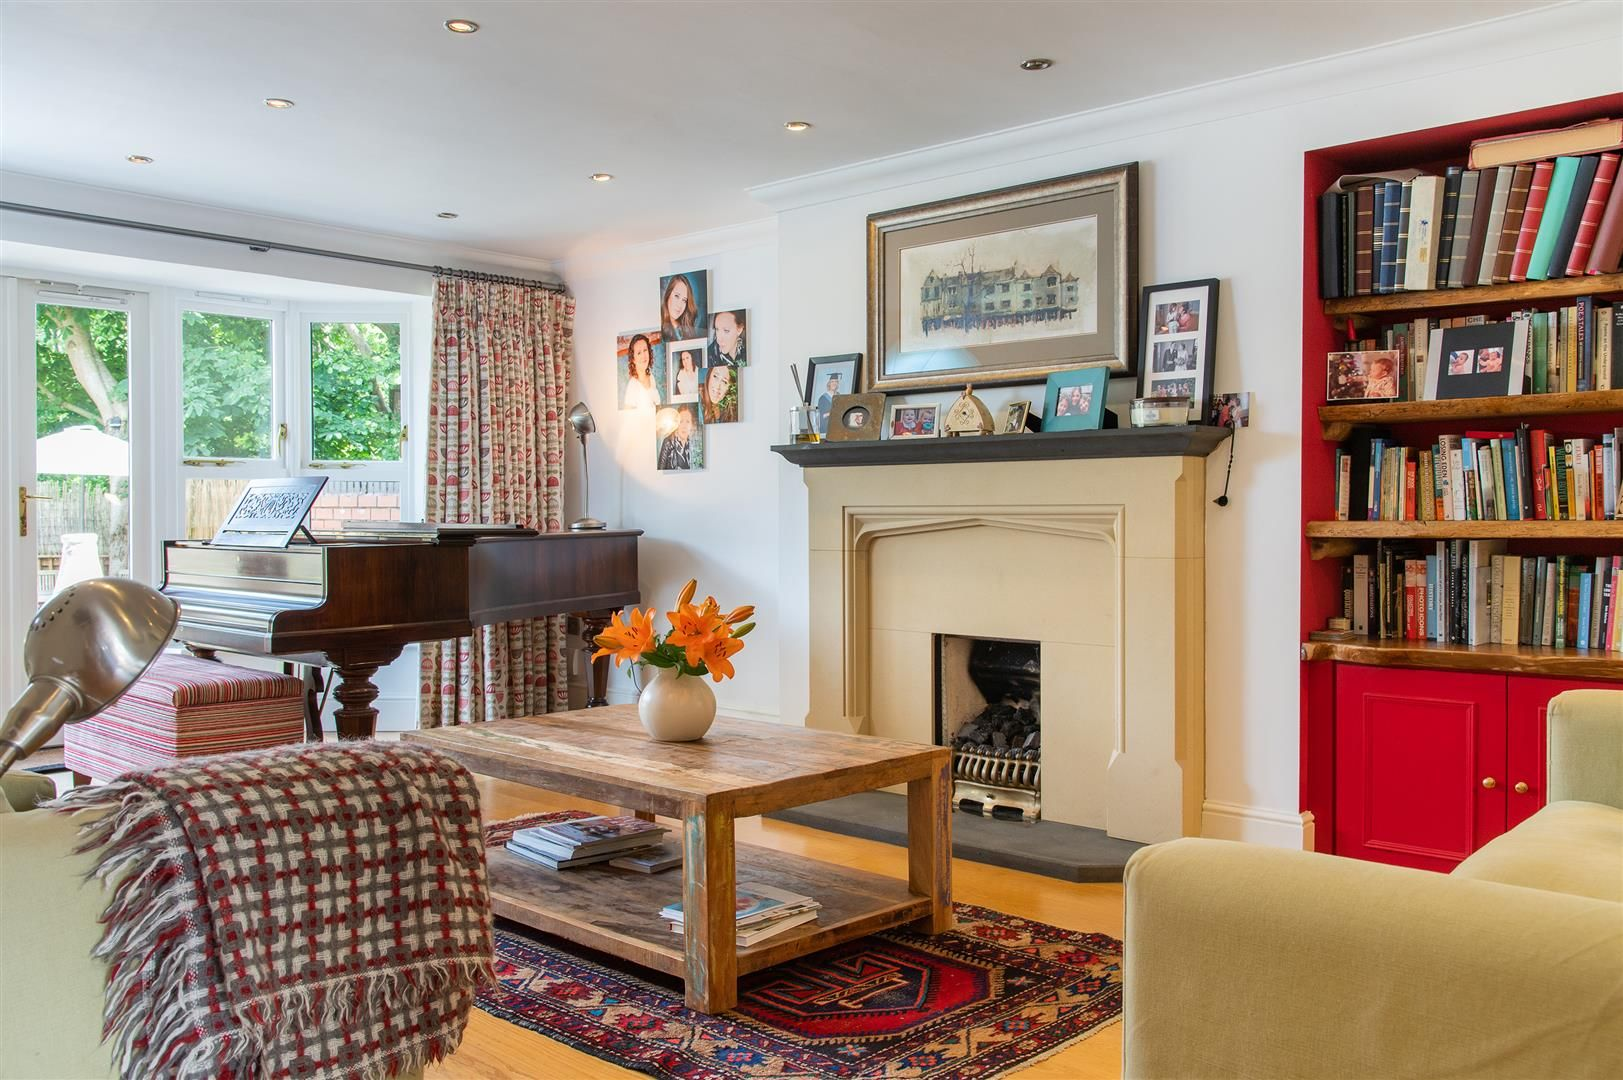 5 bed house for sale in Hagley 7